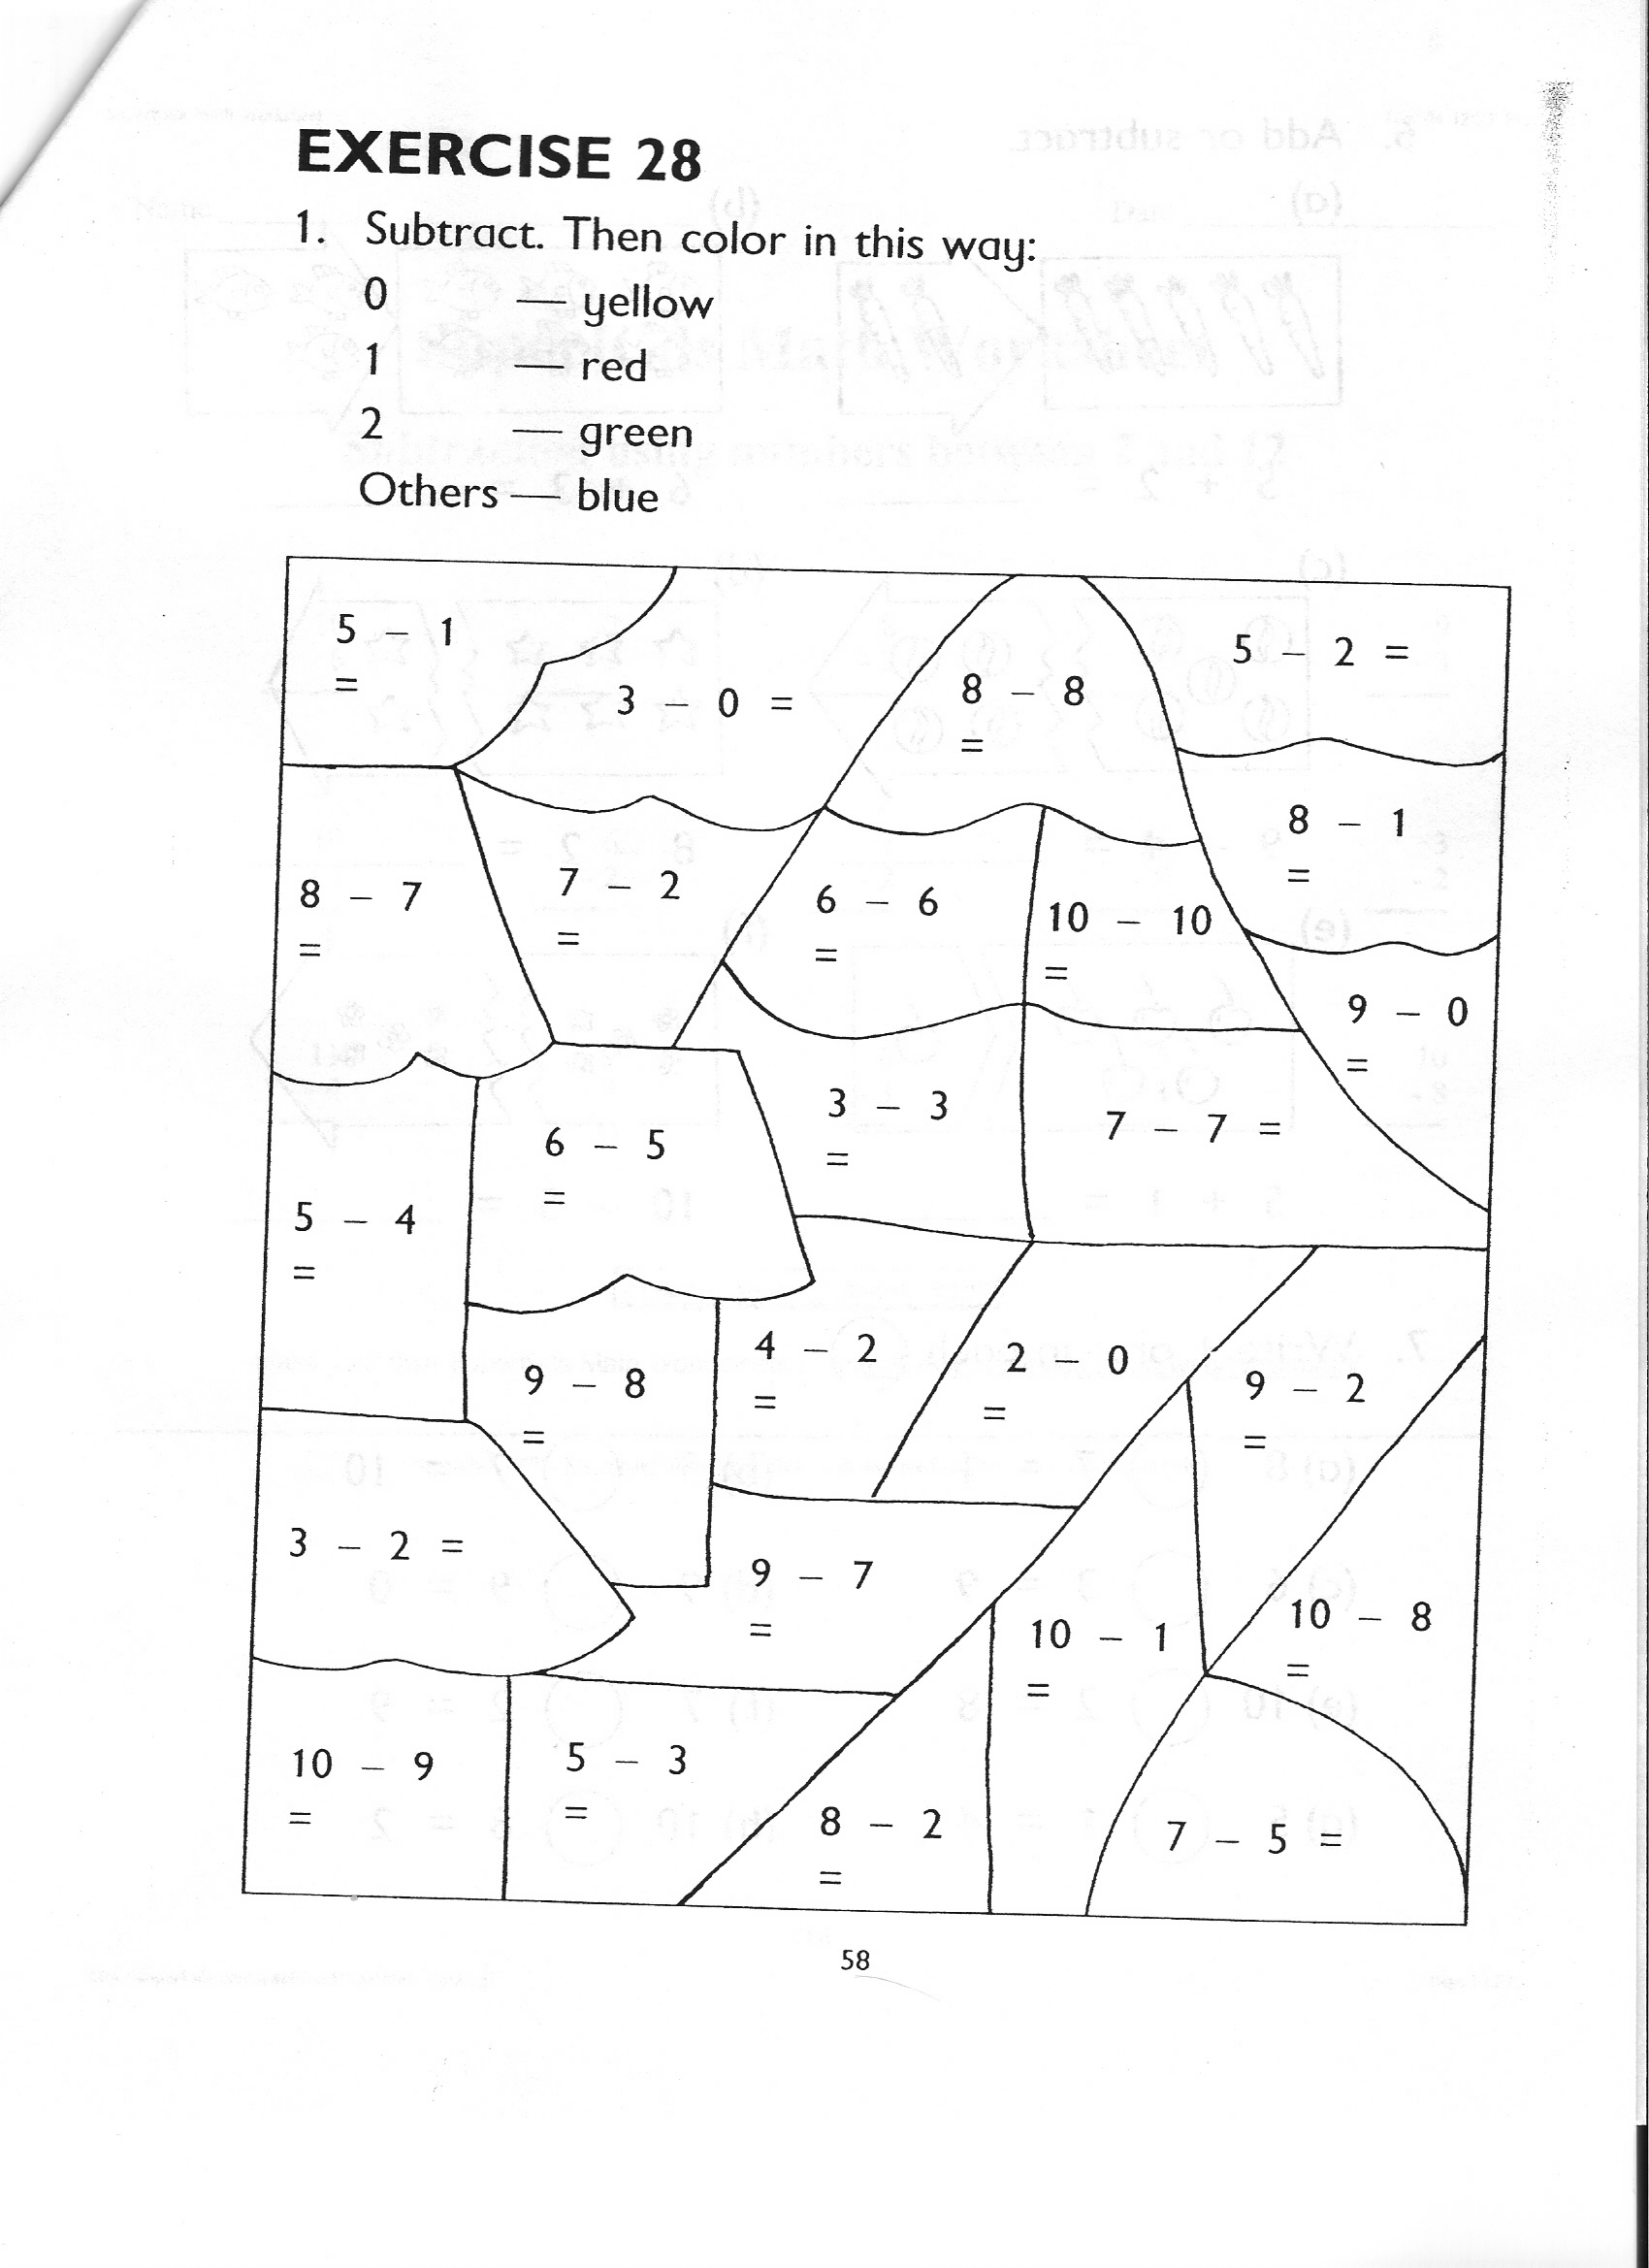 Uncategorized P3 Maths Worksheets heatherwood mathletes problems for 2005 2006 dice worksheet purple 3a exercises 16 20 pps 47 58 reviews 2 and 3 71 78 blue assignment special following from workbook